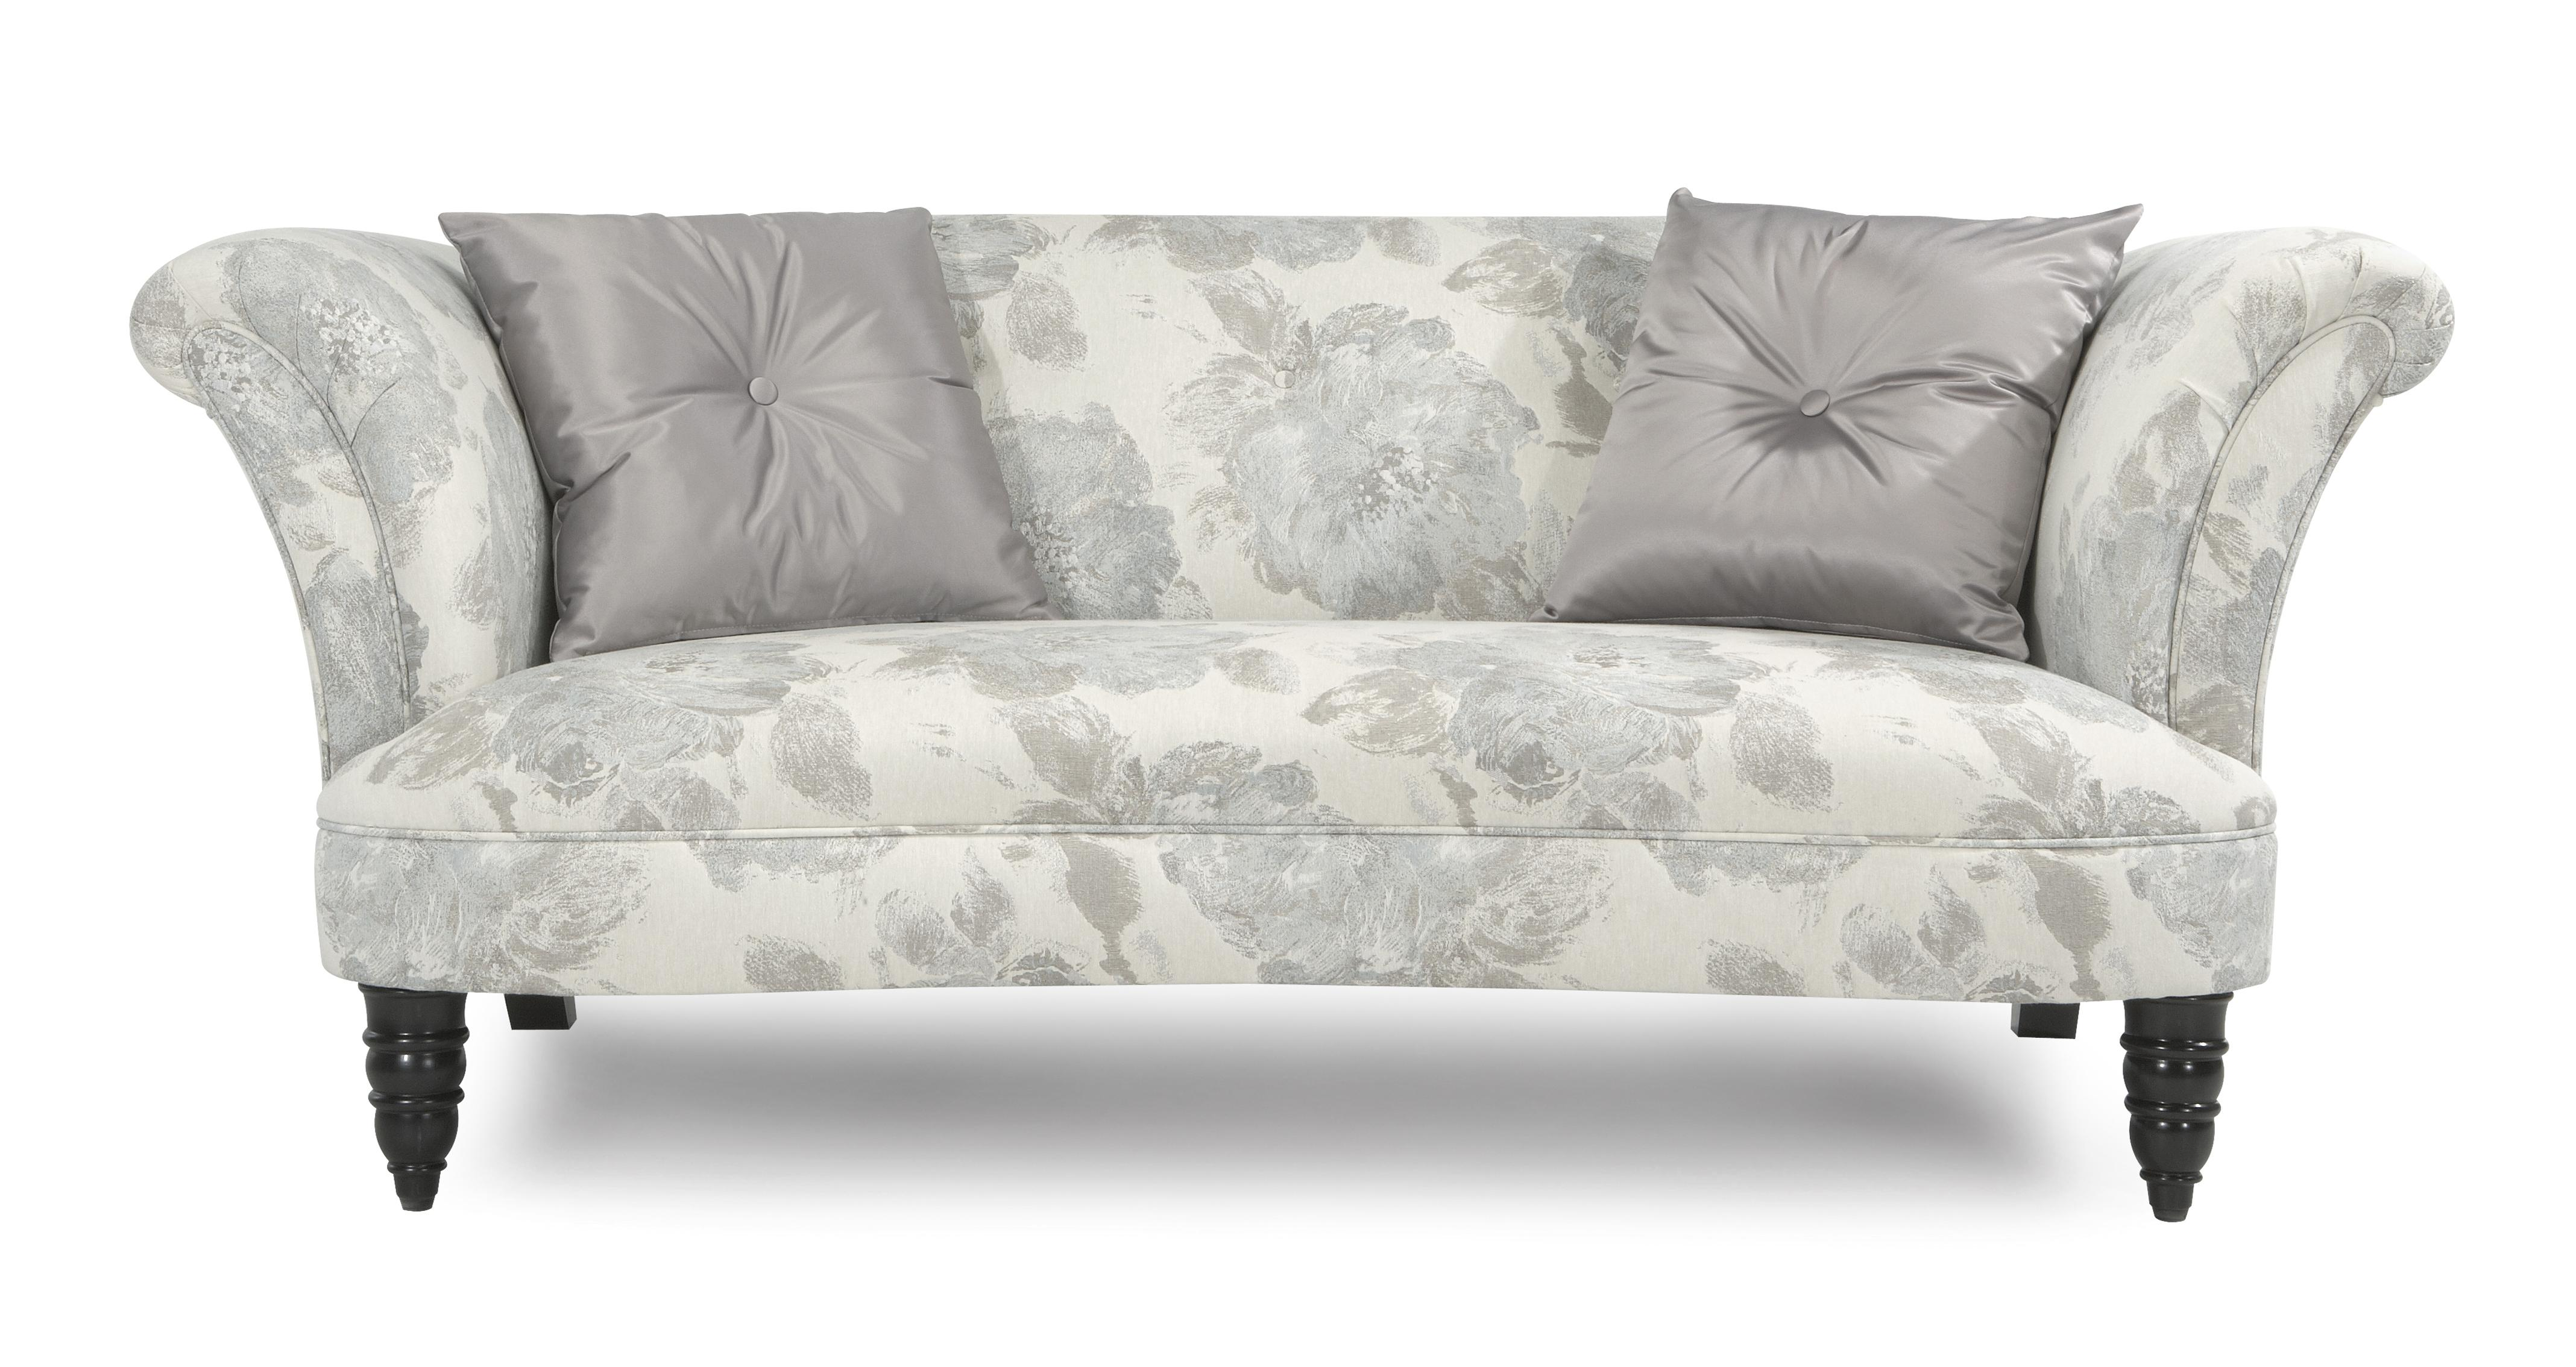 Dfs two seater sofas for Bedroom 2 seater sofa